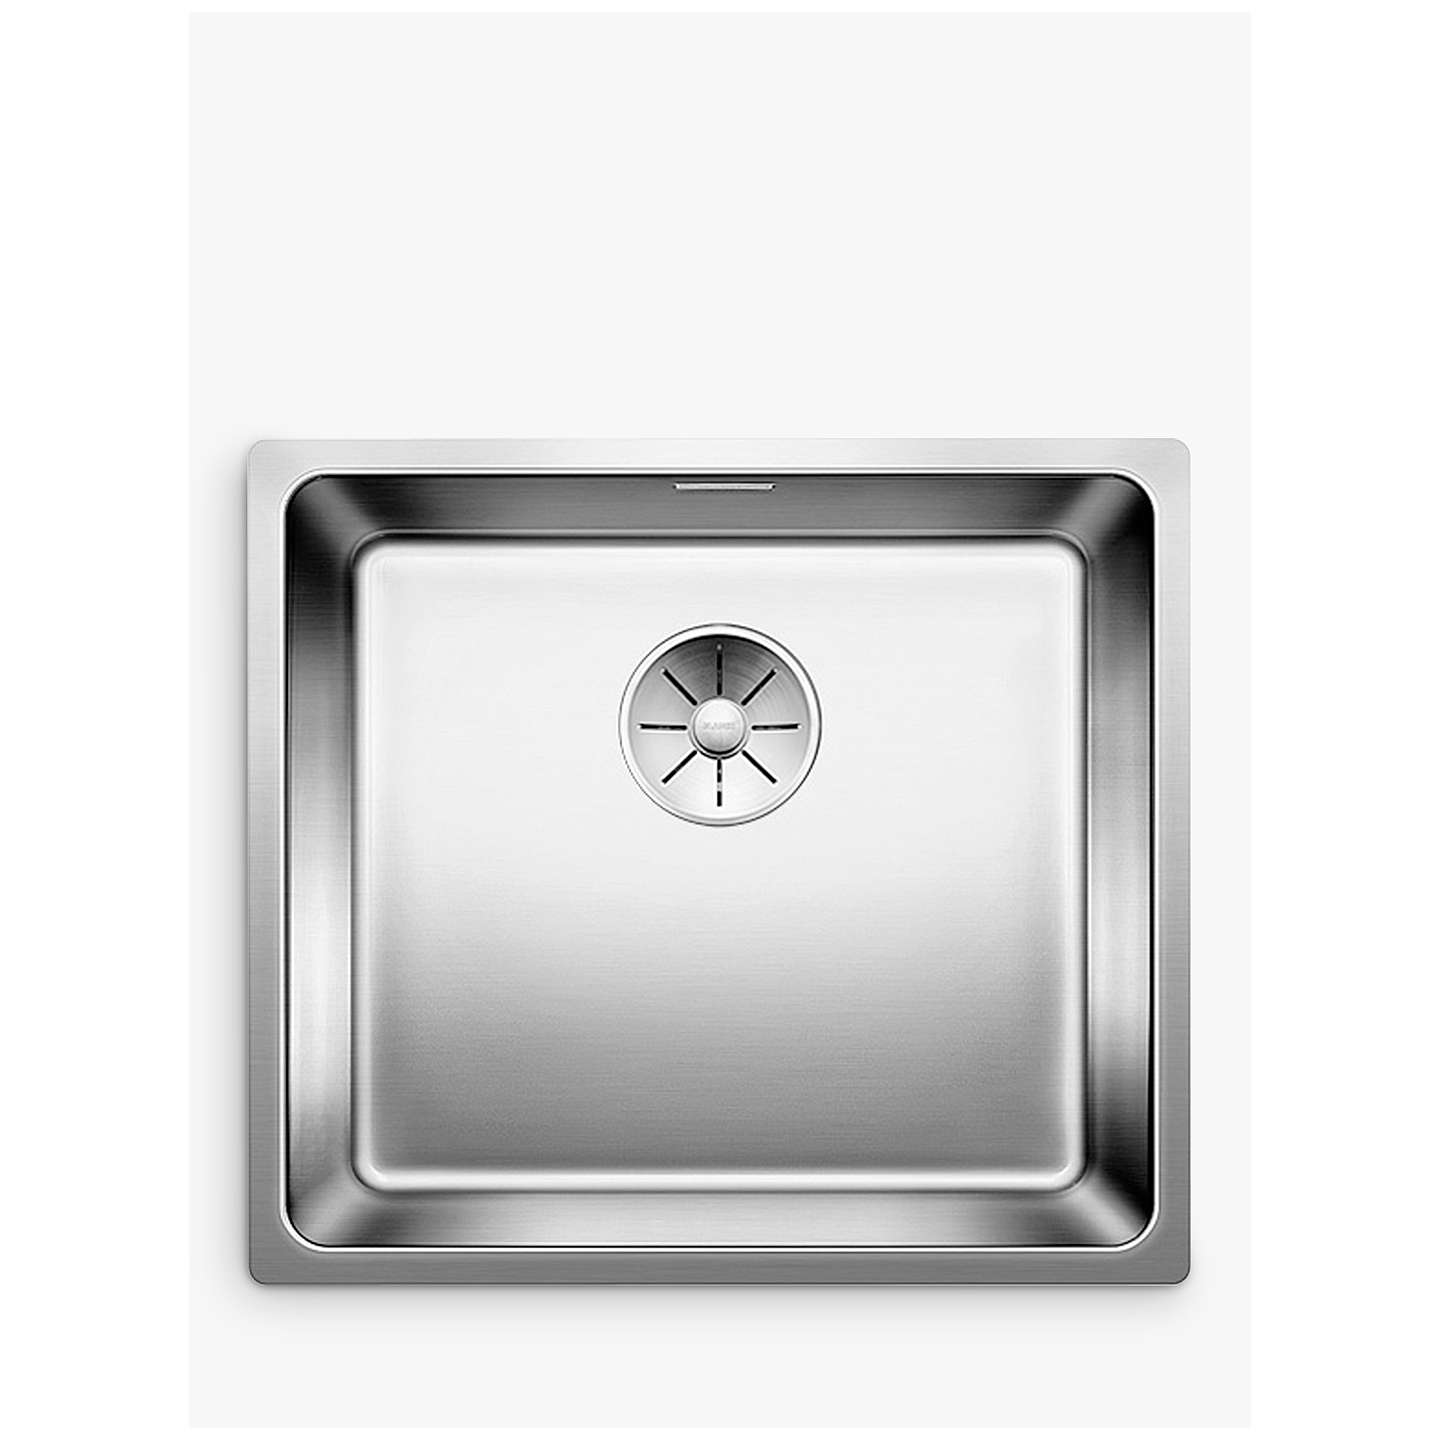 Inset Kitchen Sink Blanco andano 450 if single bowl inset kitchen sink stainless steel buyblanco andano 450 if single bowl inset kitchen sink stainless steel online at johnlewis workwithnaturefo